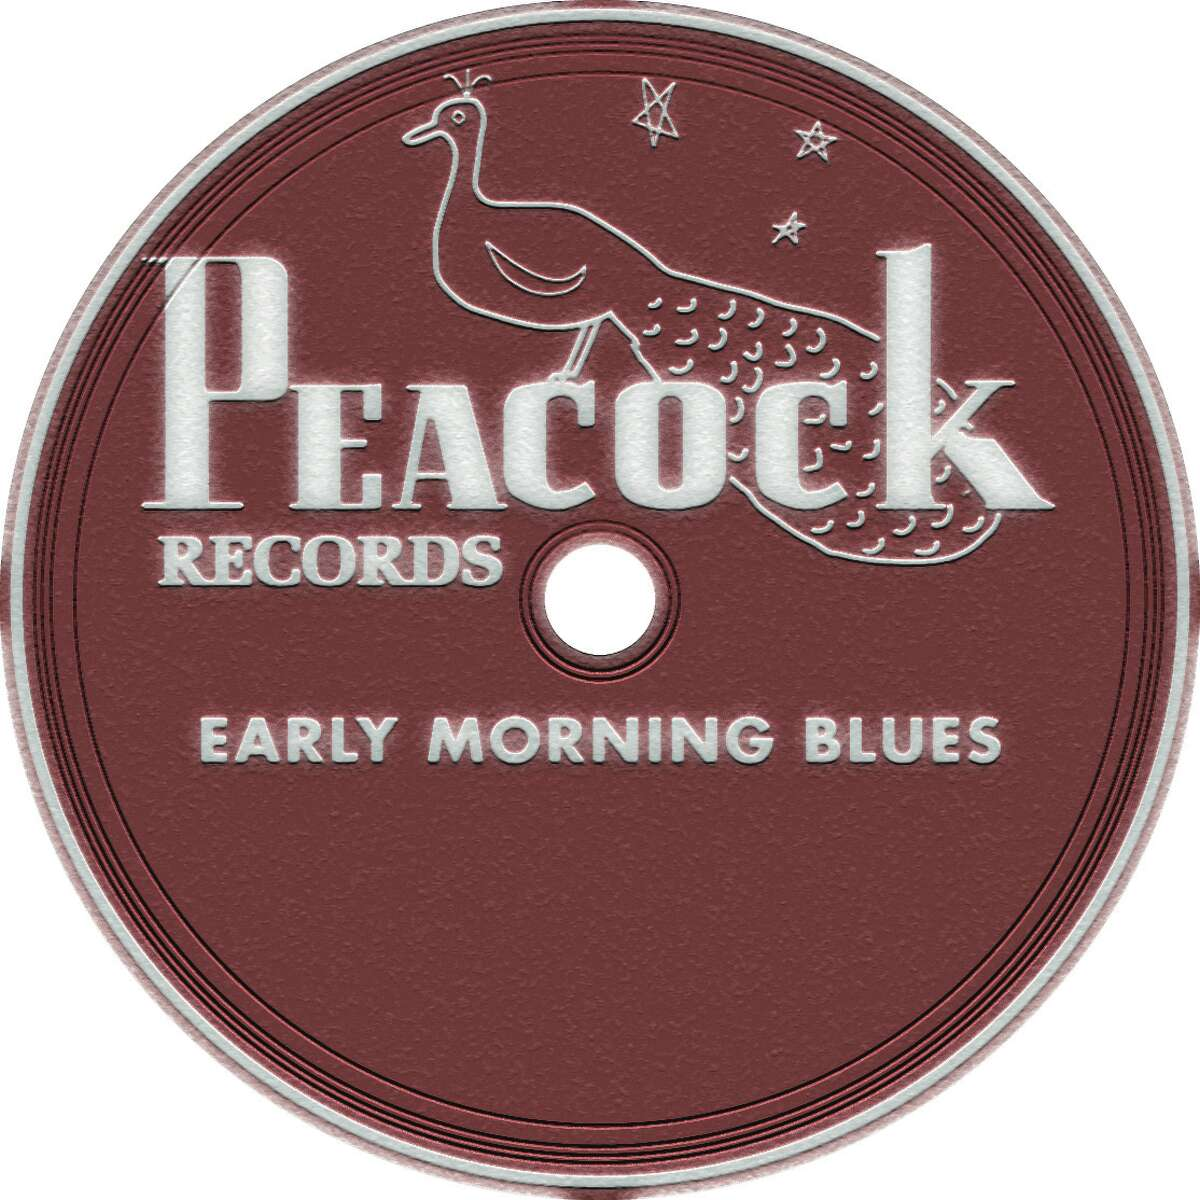 Illustration for package on Texas blues - Peacock Records label